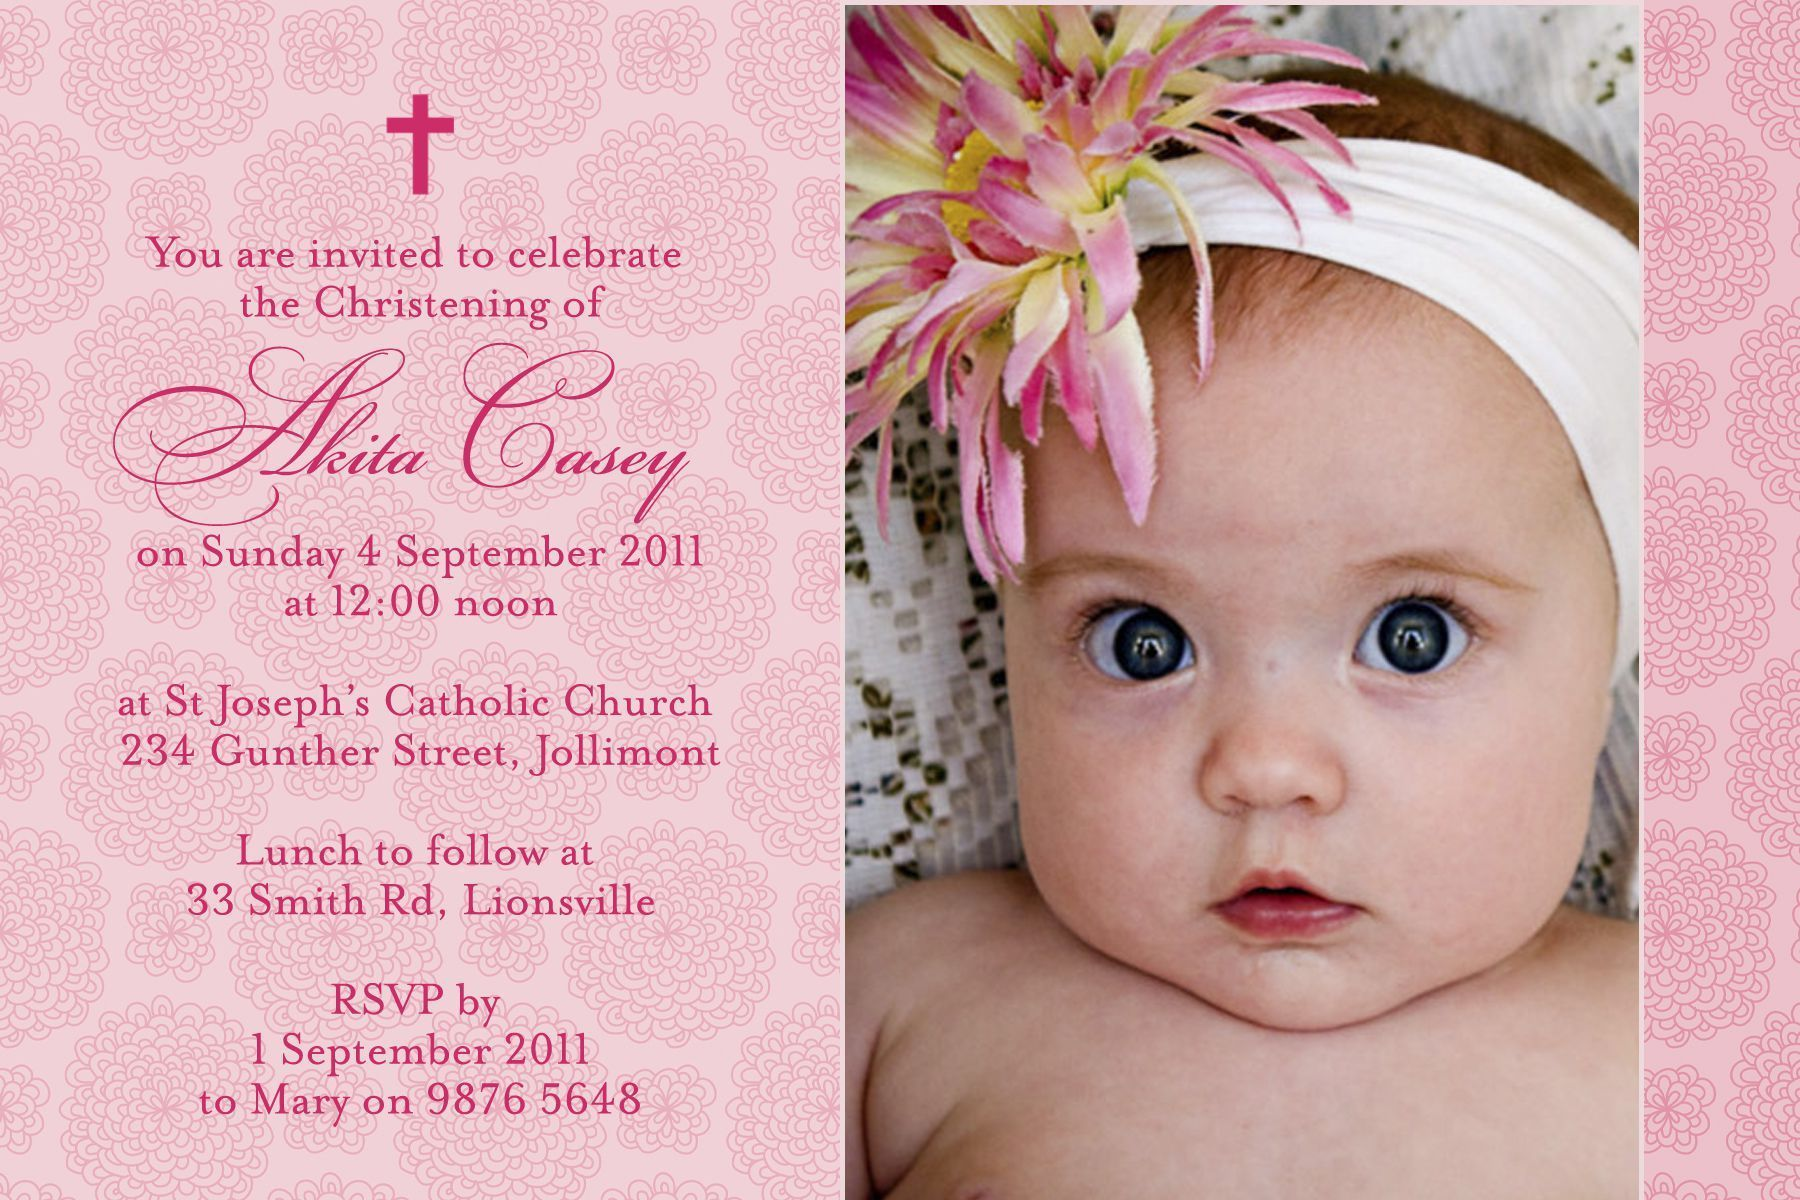 Baptism invitation wording samples baptism pinterest baptism baptism invitation wording samples stopboris Gallery